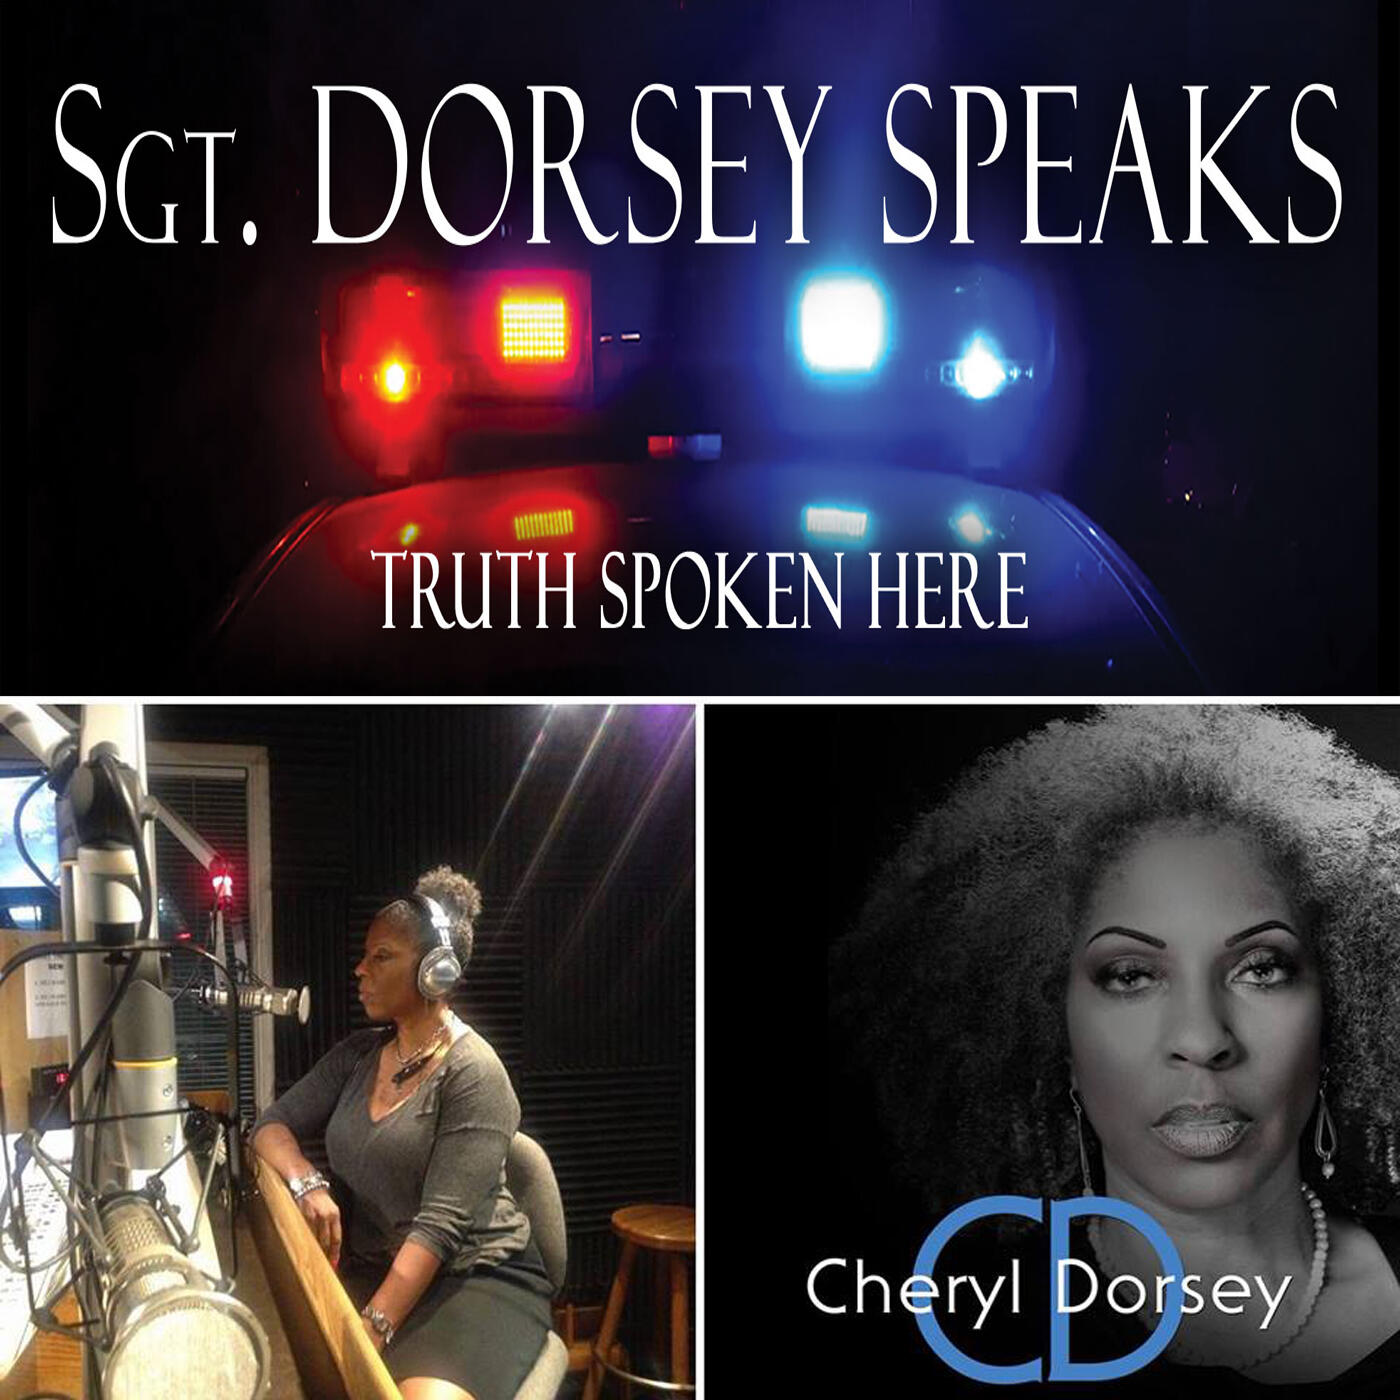 Listen to the Sgt Dorsey Speaks Episode - SDS Ep12 Oct 30 2018 - ICE-T Arrested & Cops involved in deadly shooting of Alton Sterling appeal firing on iHeartRadio | iHeartRadio